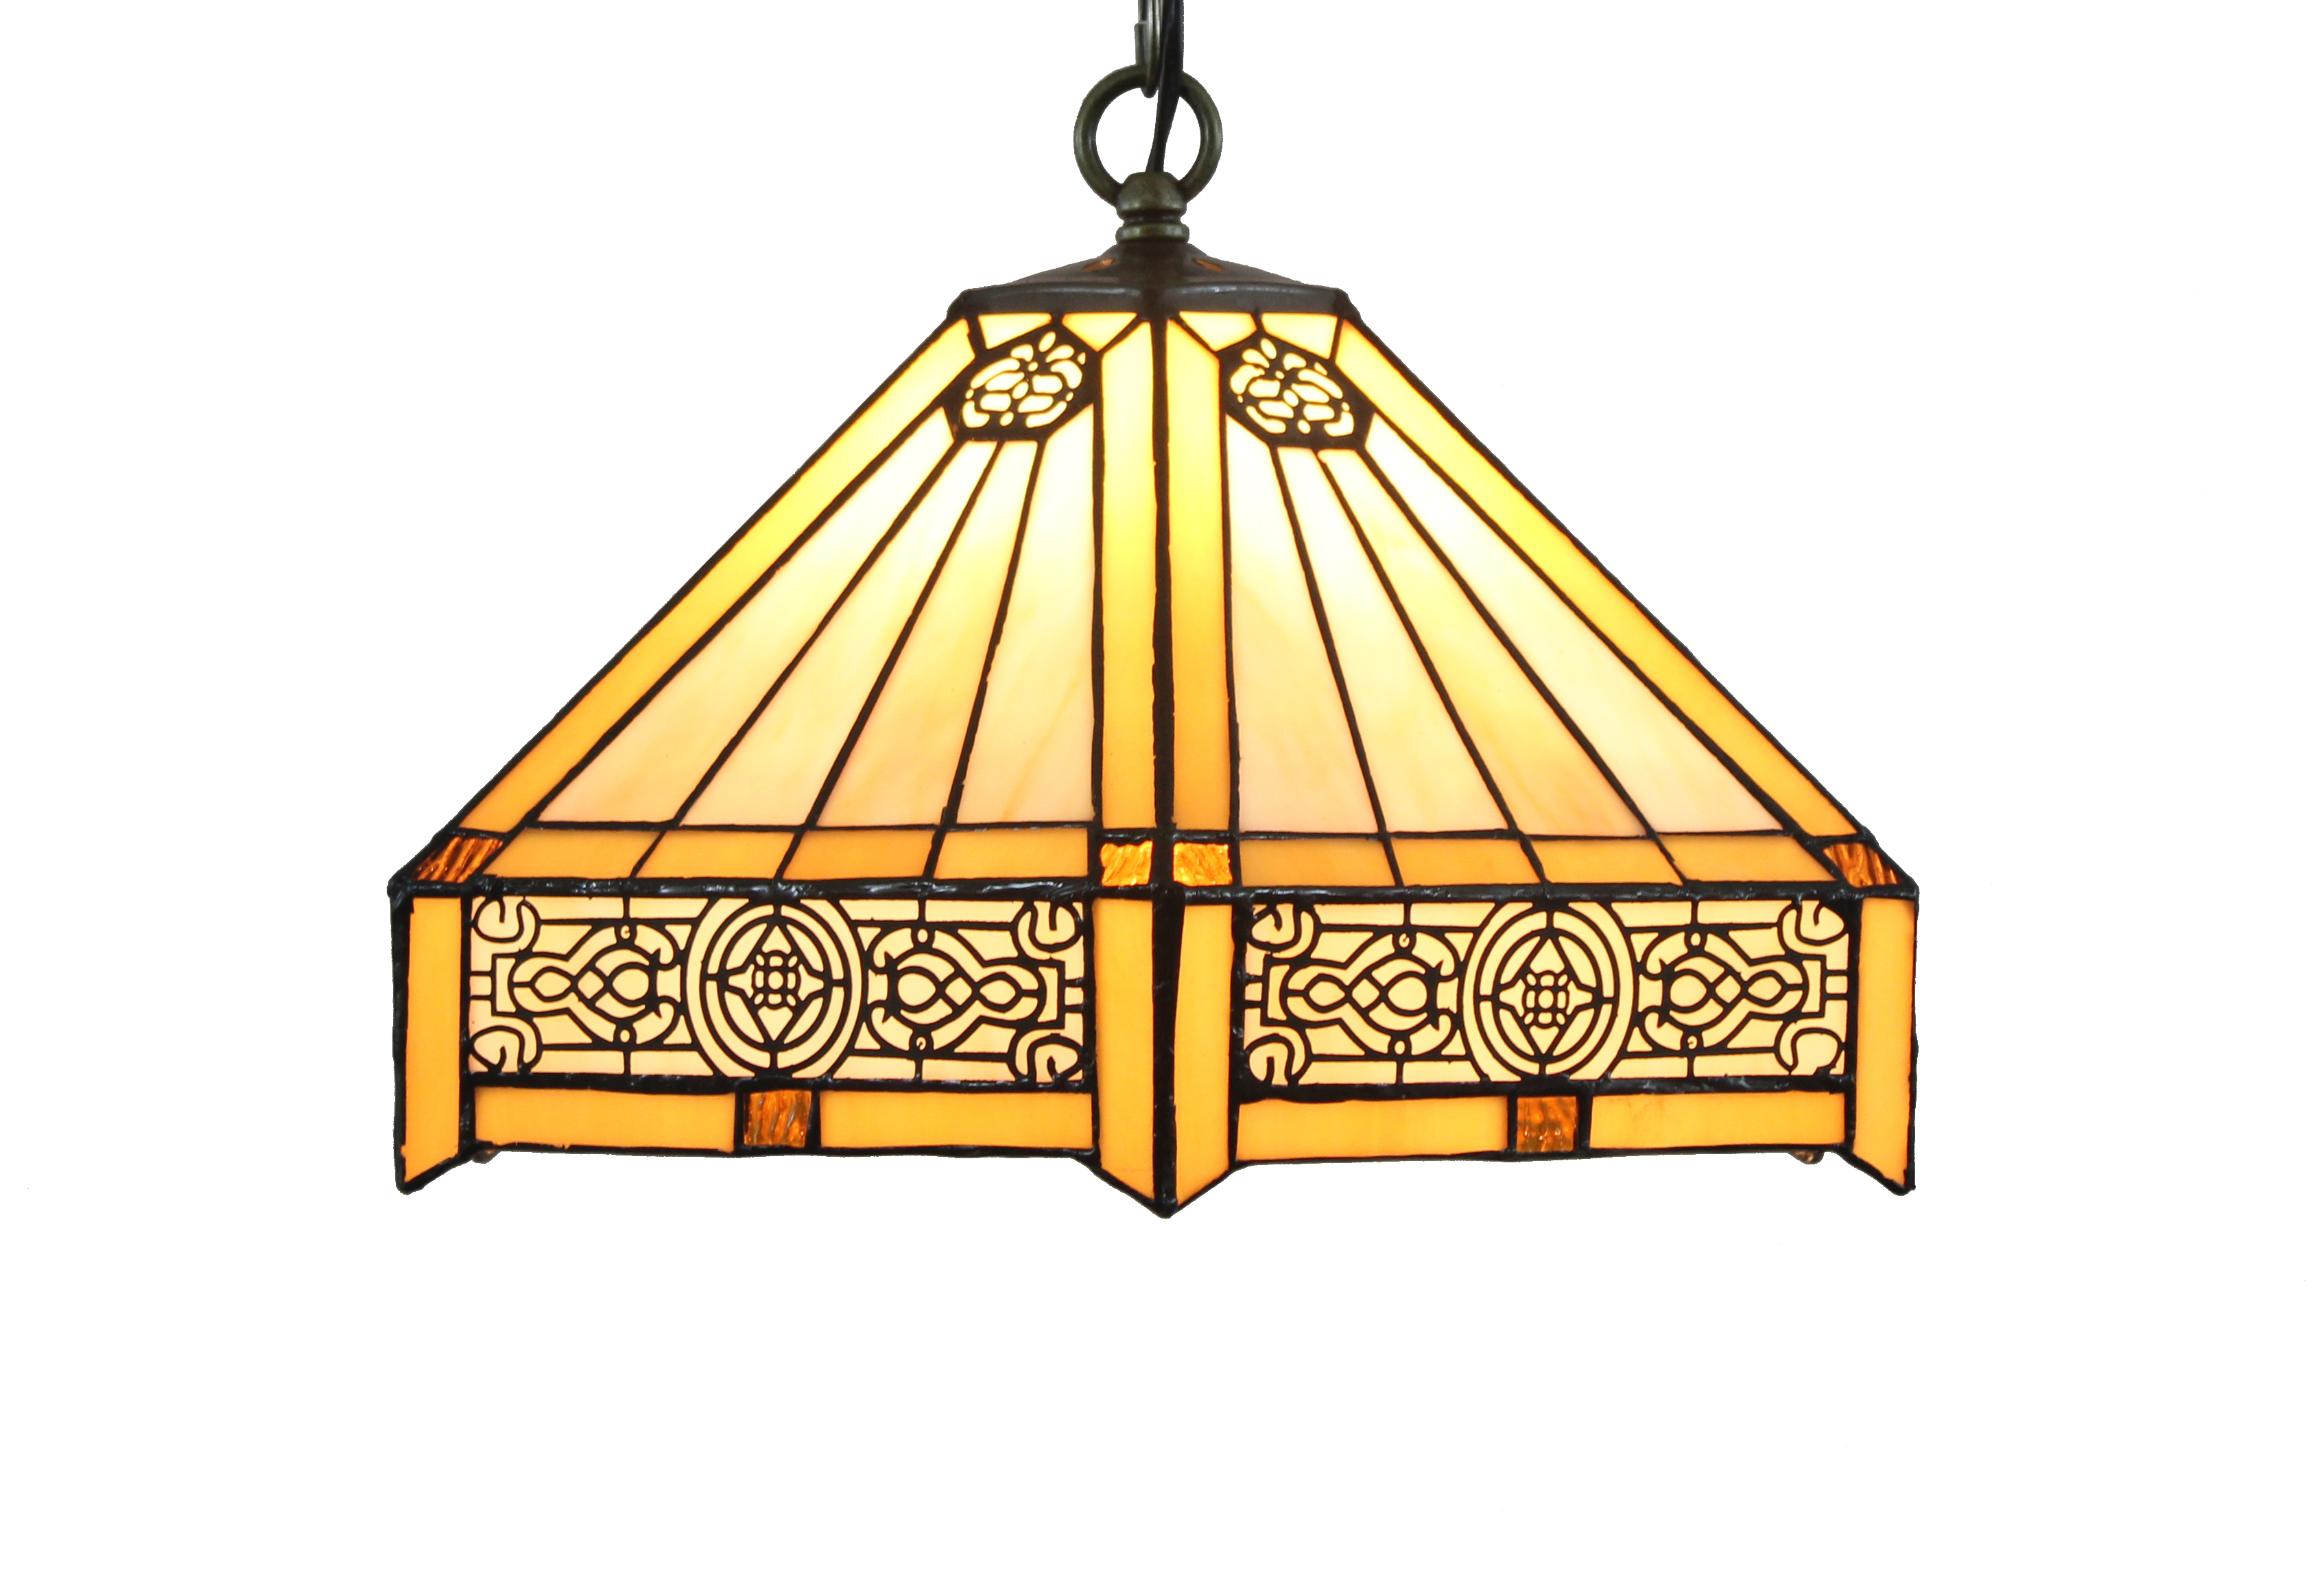 Tiffany hanging bar light stained glass island lamp ceiling pendant tiffany hanging bar light stained glass island lamp arubaitofo Images